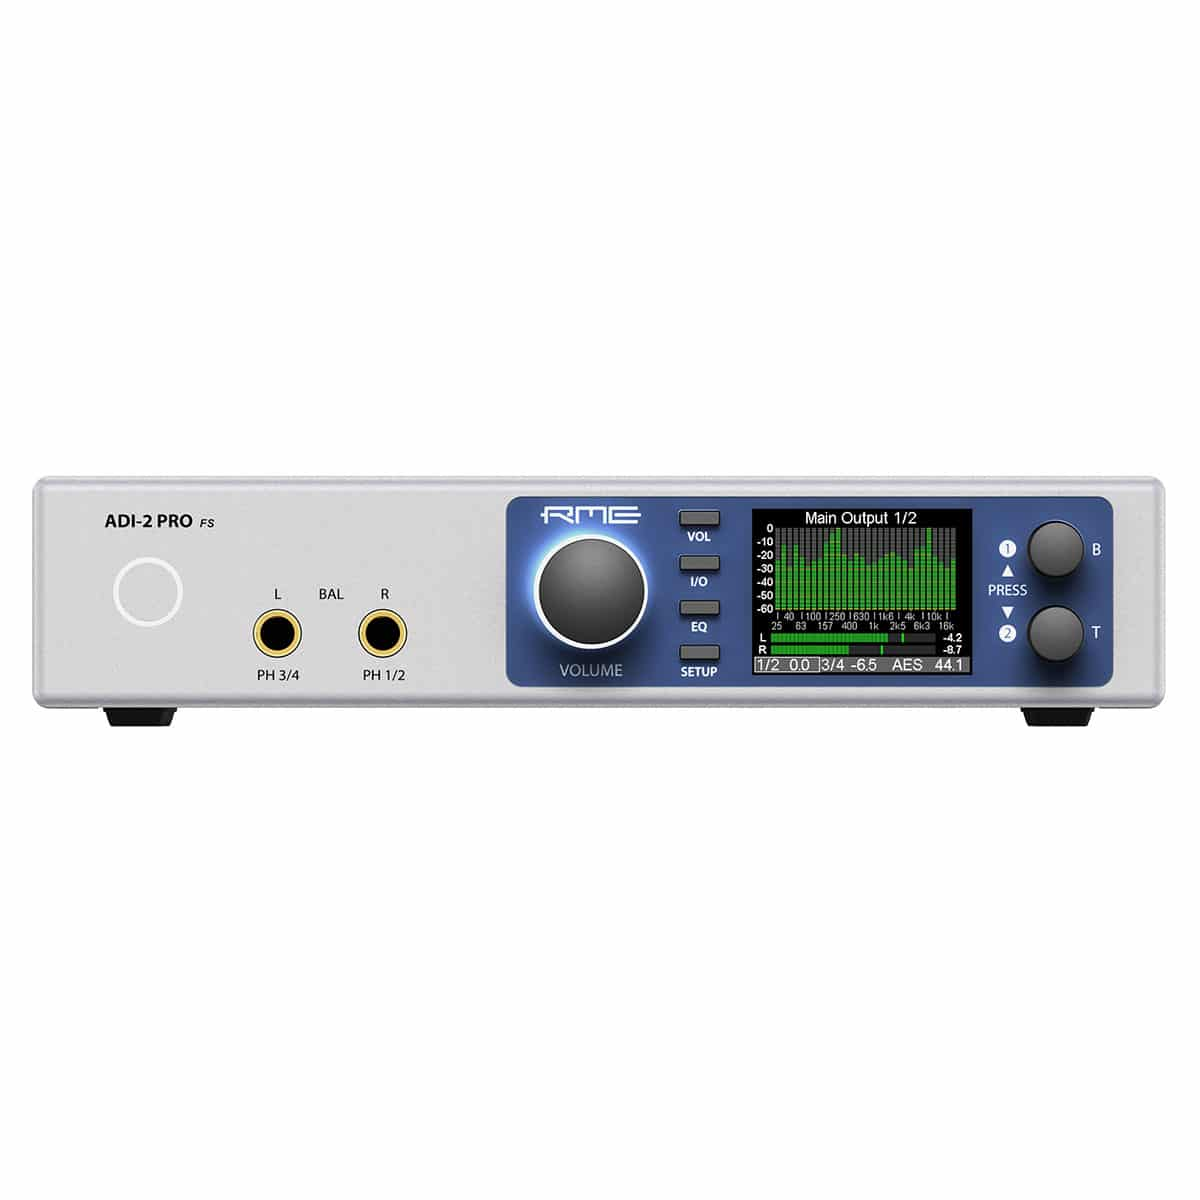 RME ADI 2 PRO FS 01 Convertitori Audio, Pro Audio, Audio Digitale, Schede Audio per PC e MAC